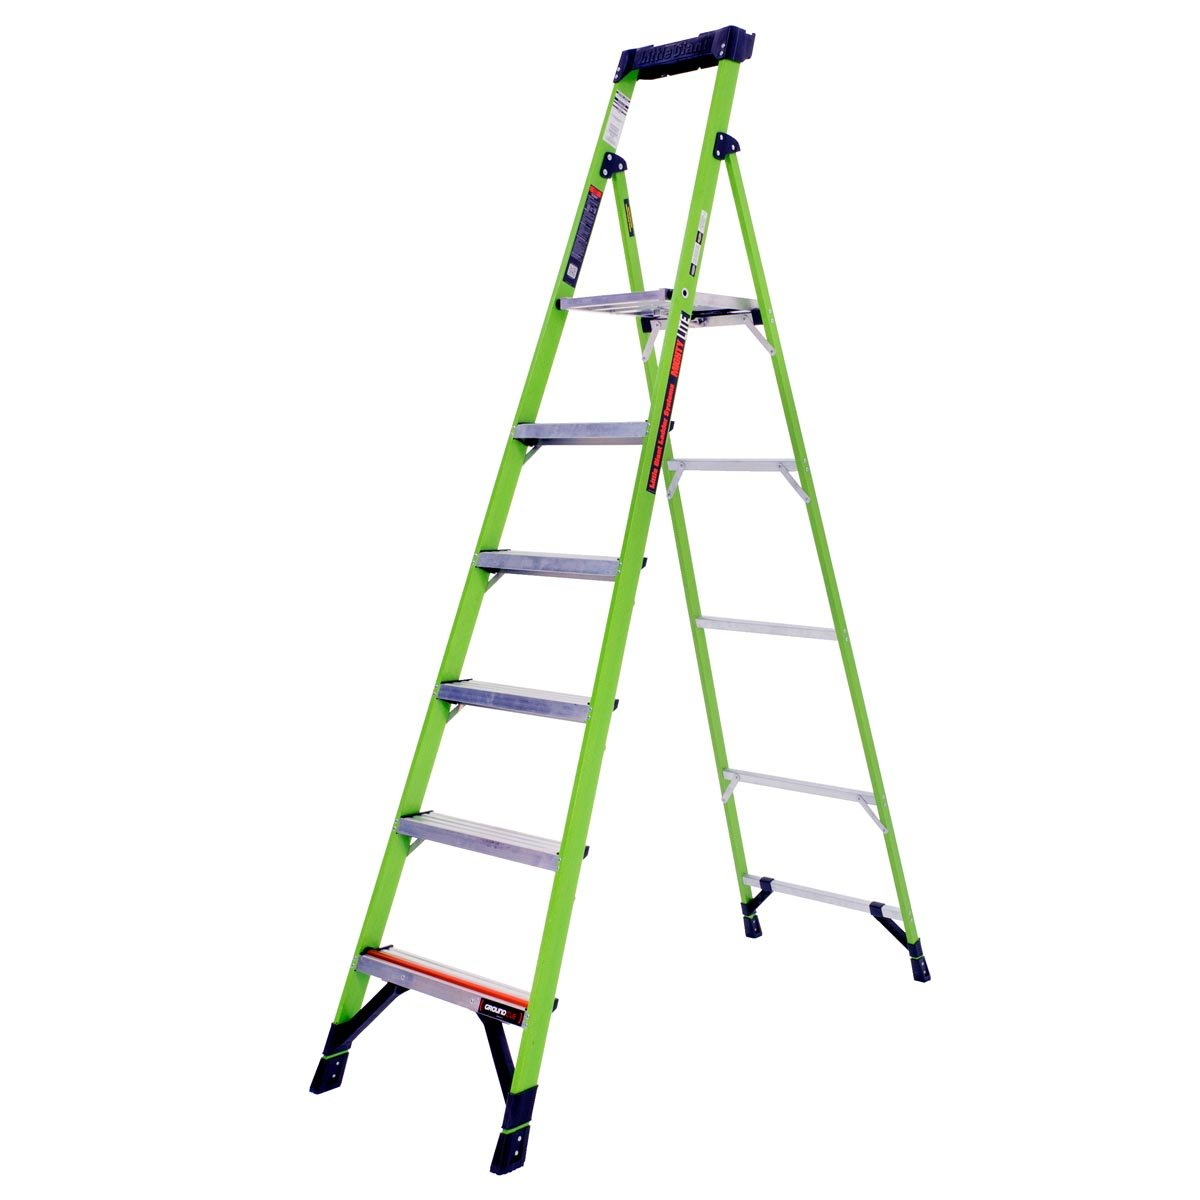 Little Giant® 15386-001 MightyLite 6 ft Step Ladder, 375 lbs, IAA ANSI, Fiberglass